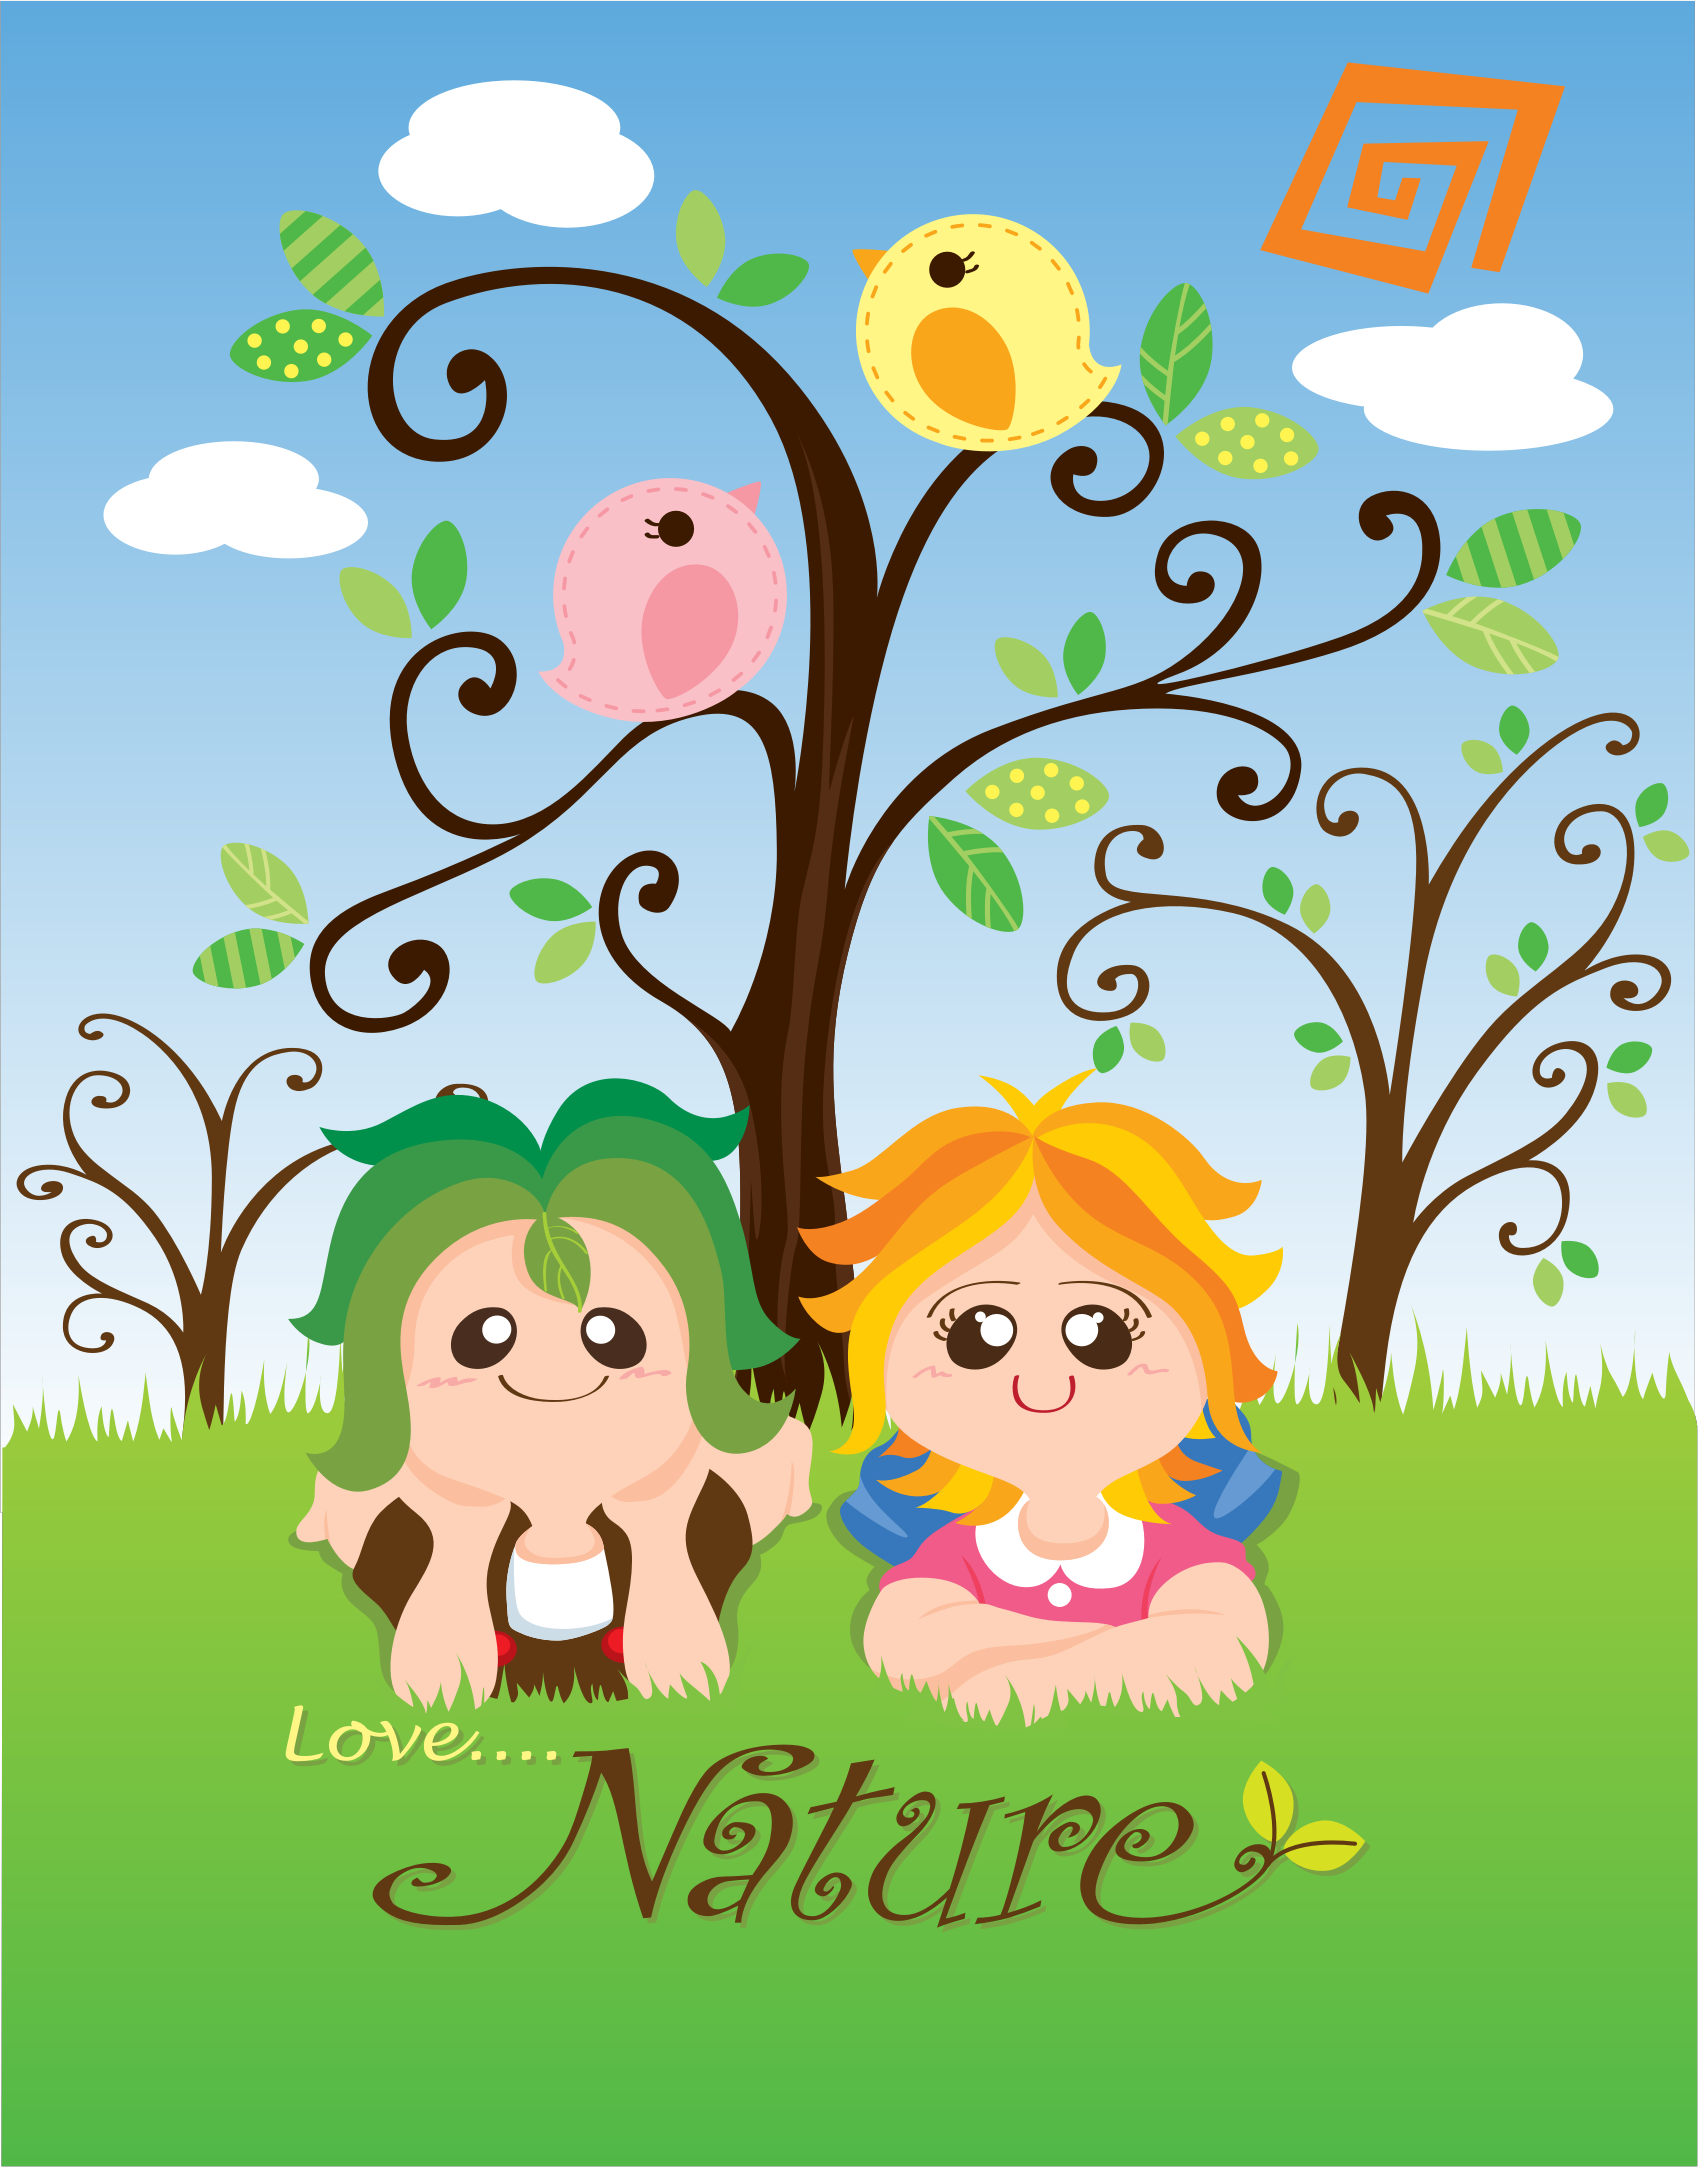 Kids Respecting Nature Clipart.